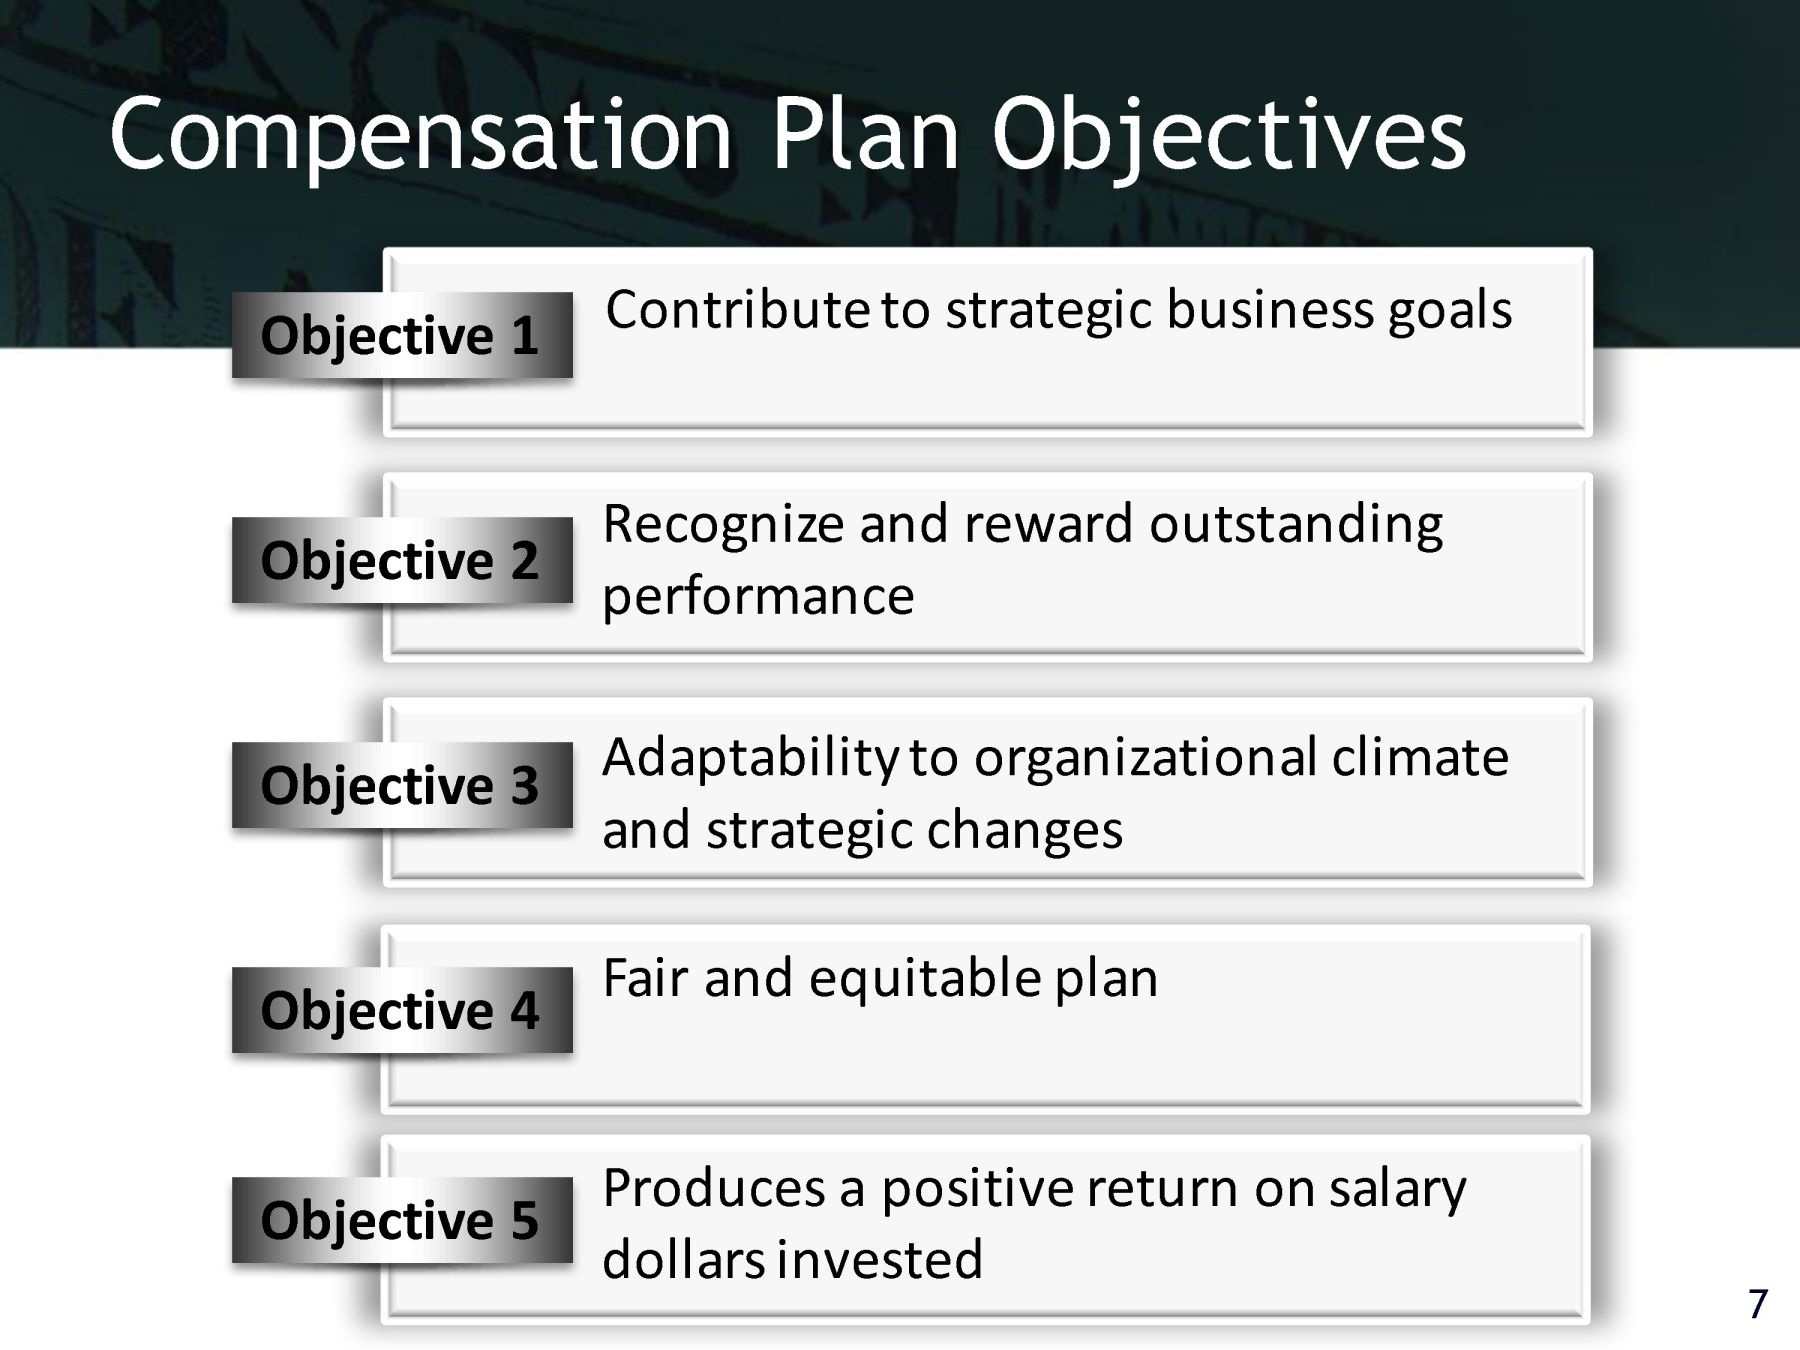 compensation strategy Now is a good time to rethink your compensation strategy as more employees are electing to leave their jobs.